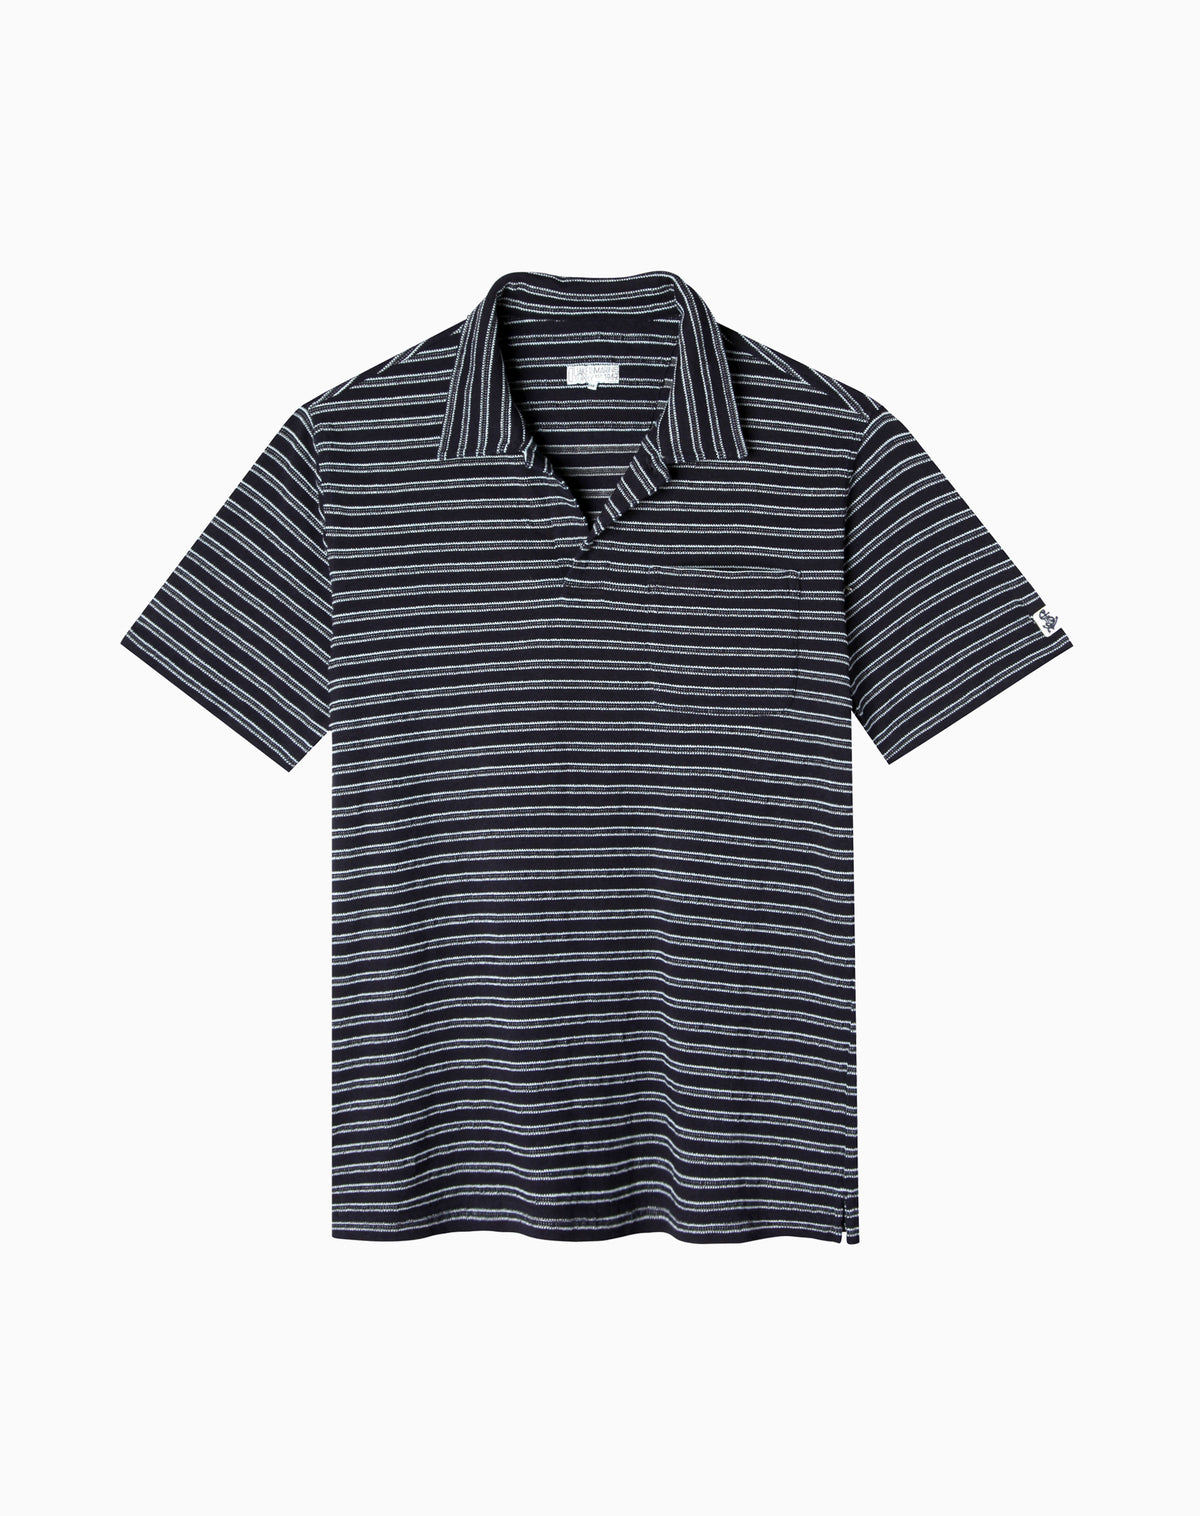 Indigo Polo in Dark Wash Jacquard Stripe